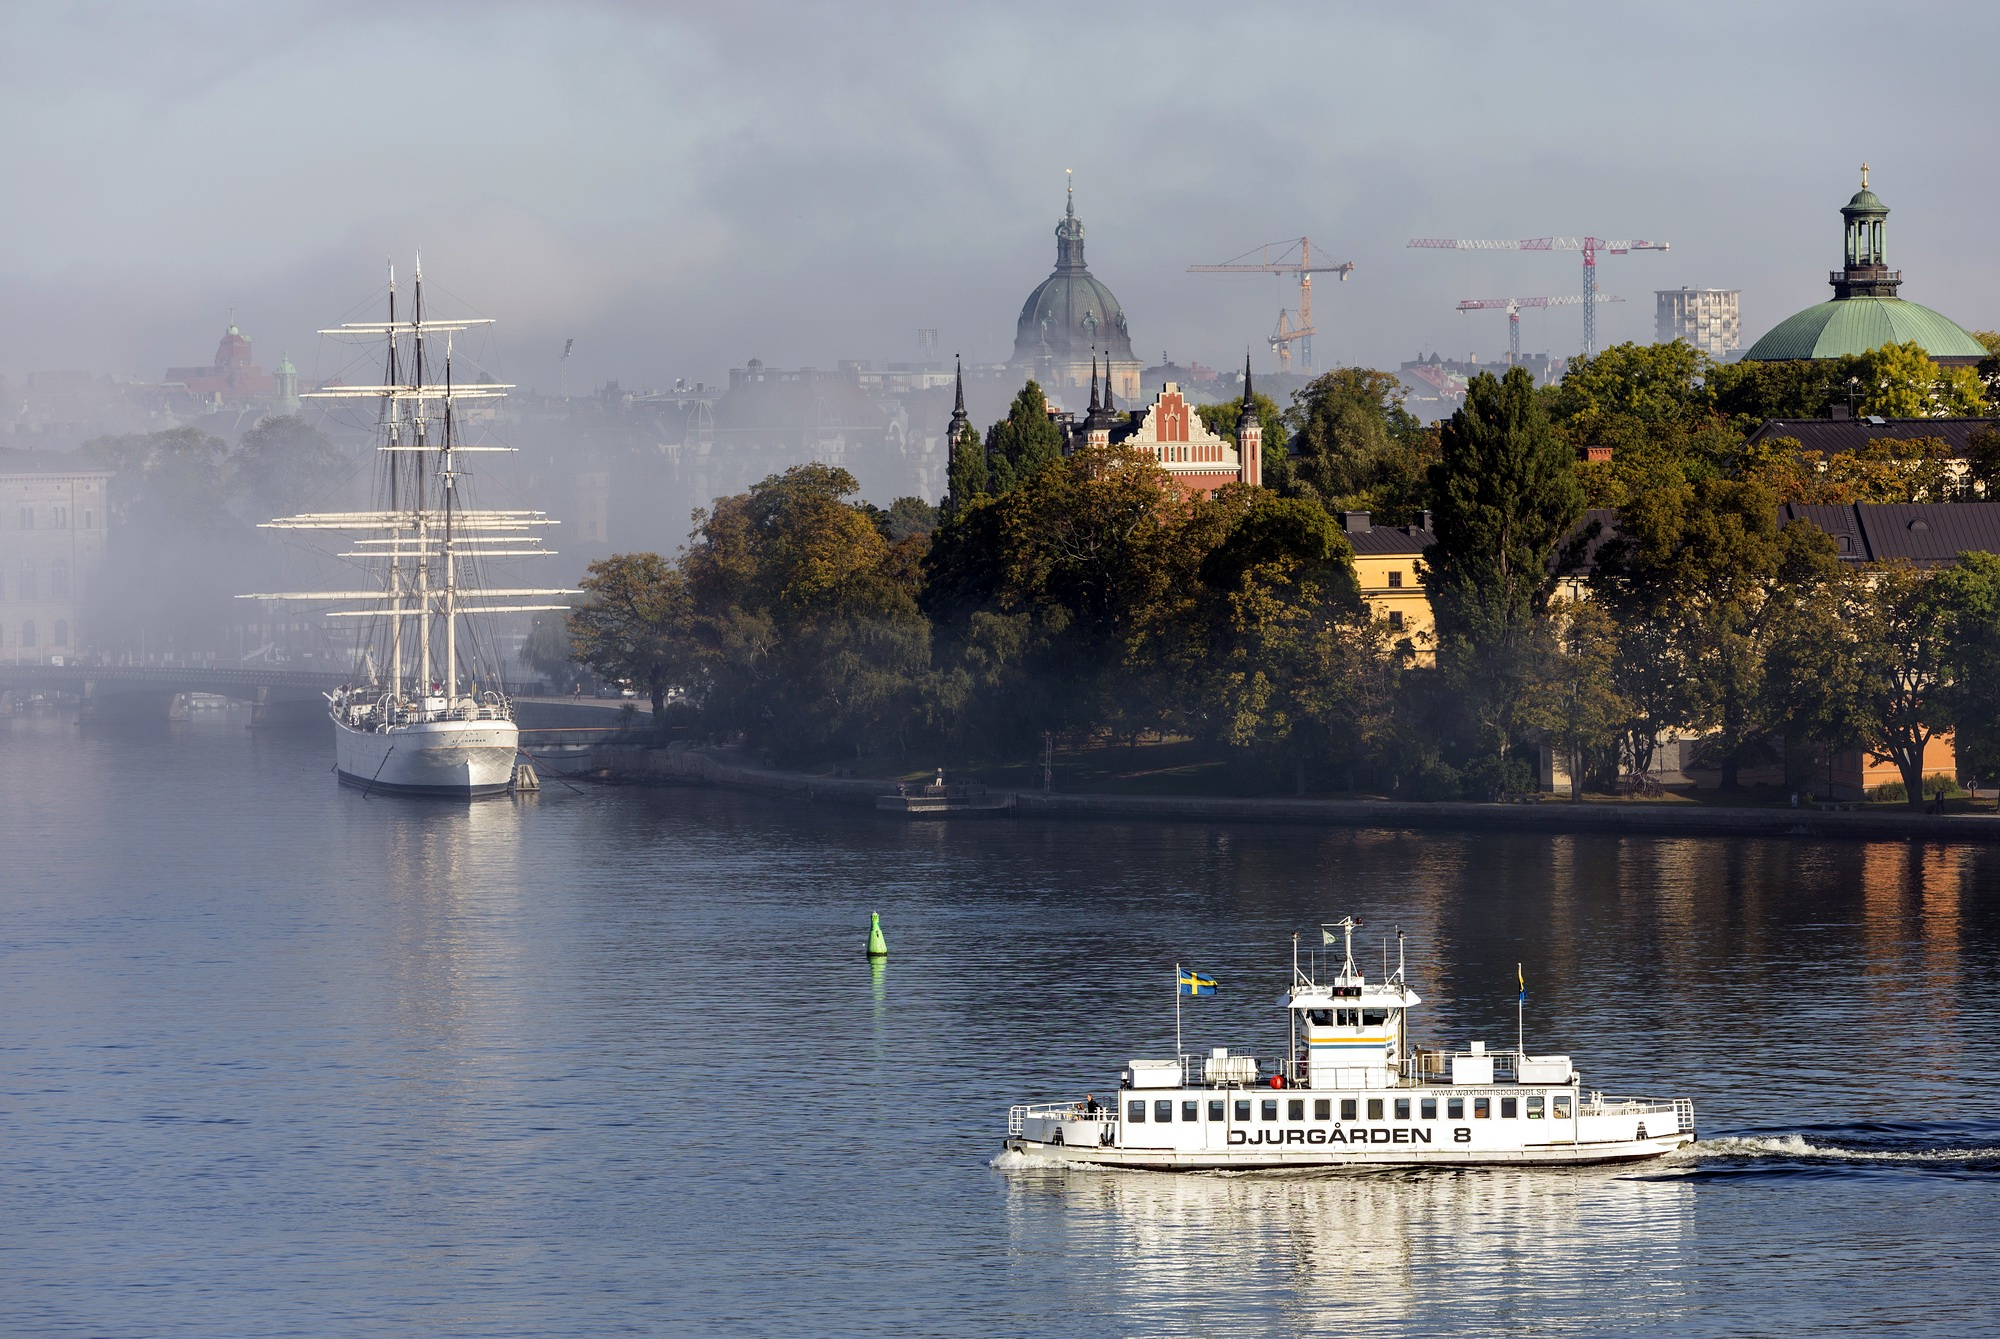 Trygg_Sthlm_Fog_Sep14_0179_High-res (1)